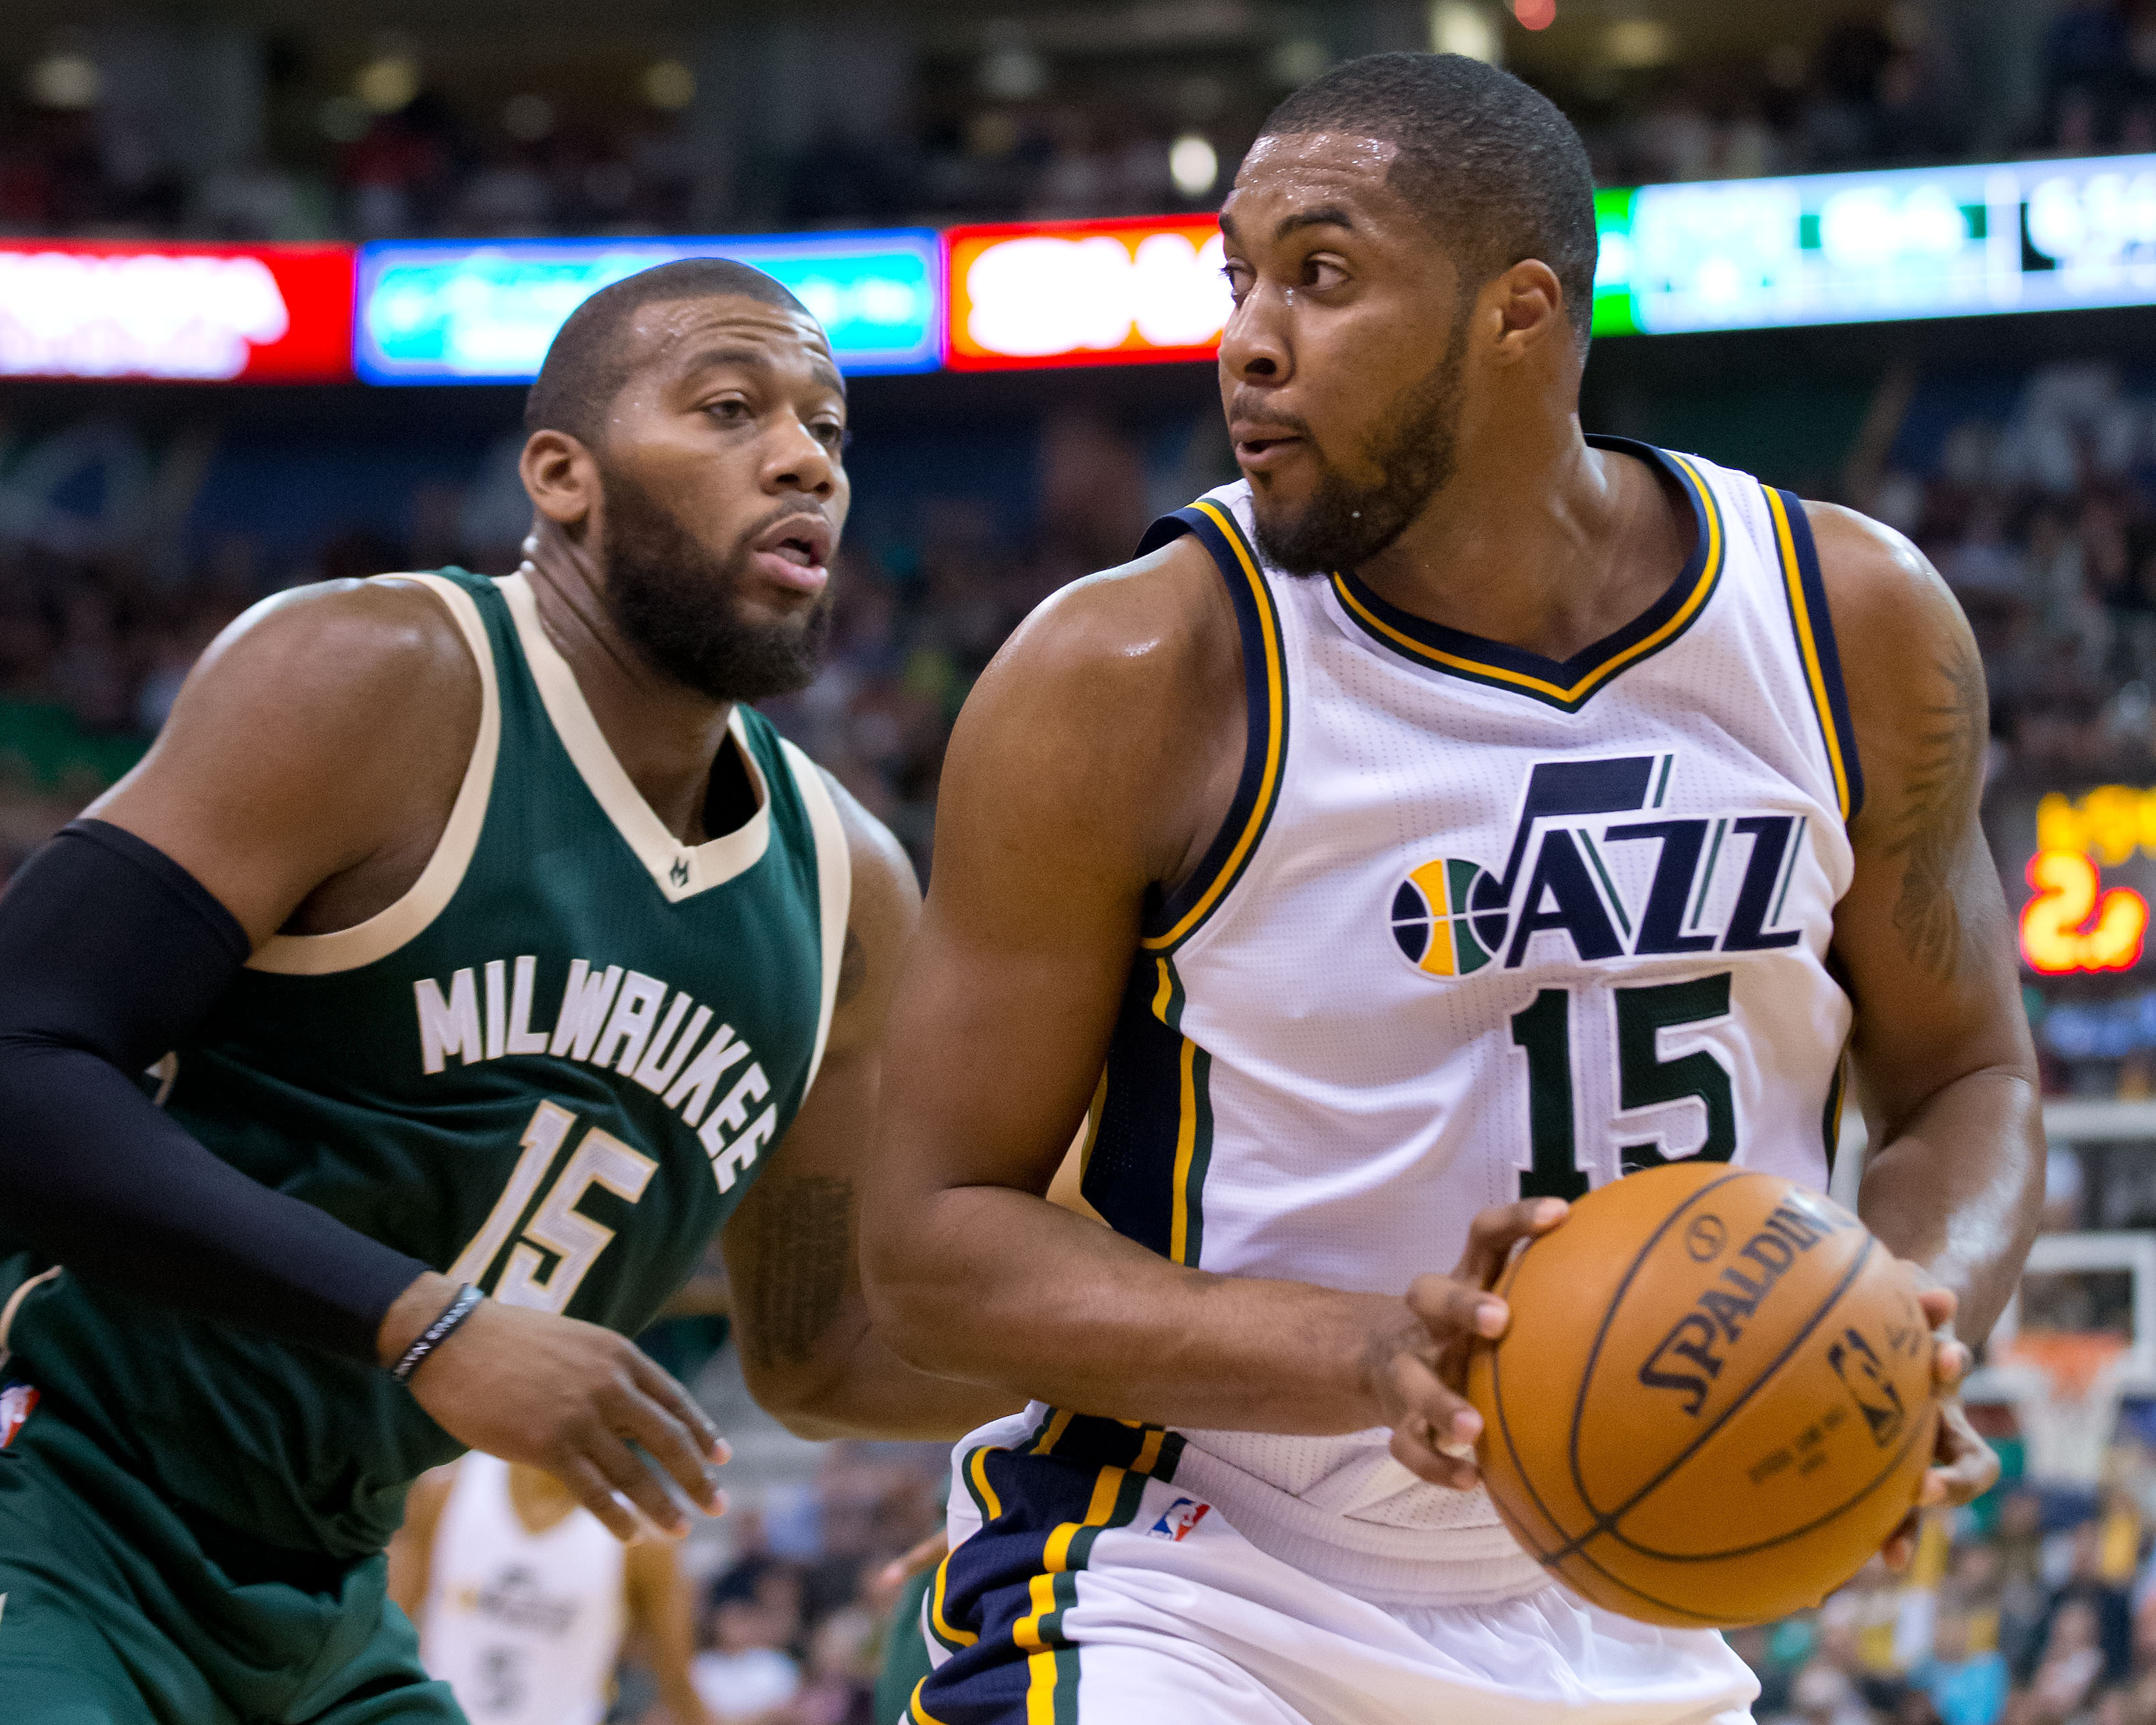 Feb 5, 2016; Salt Lake City, UT, USA; Milwaukee Bucks center Greg Monroe (15) defends against Utah Jazz forward Derrick Favors (15) during the second half at Vivint Smart Home Arena. The Jazz won 84-81. Mandatory Credit: Russ Isabella-USA TODAY Sports